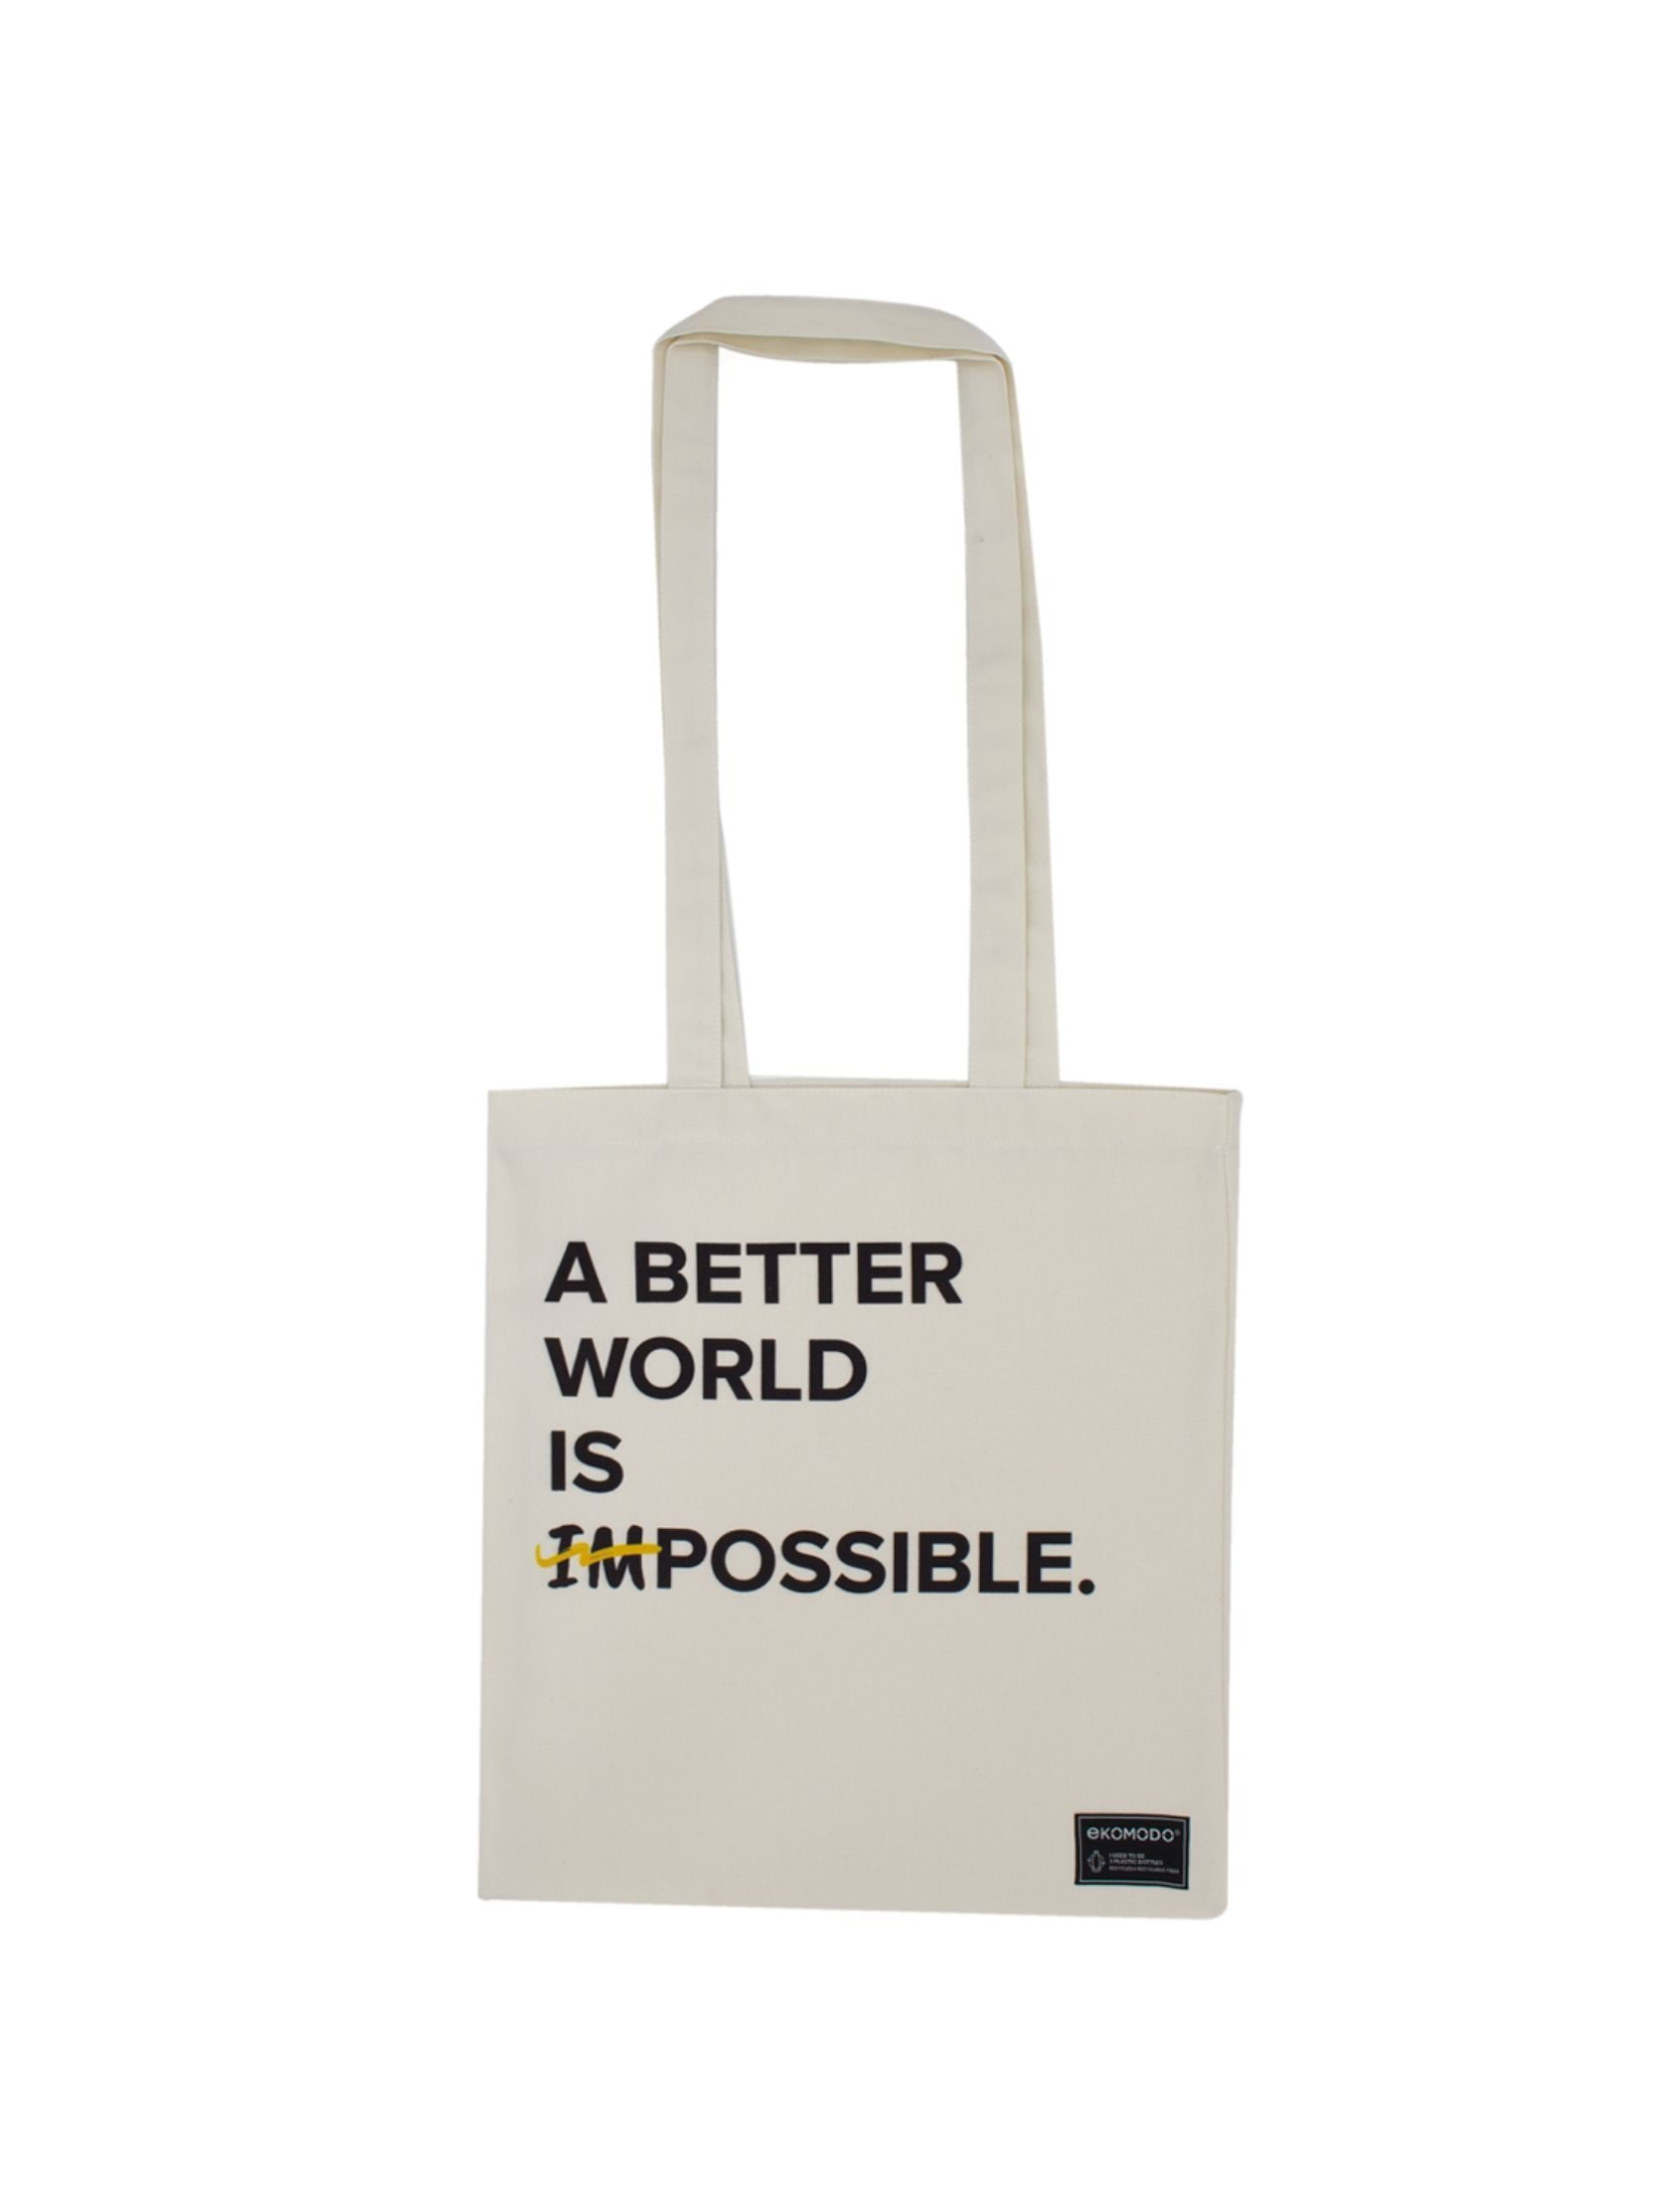 bolso tote bag dana con mensaje a better world is possible